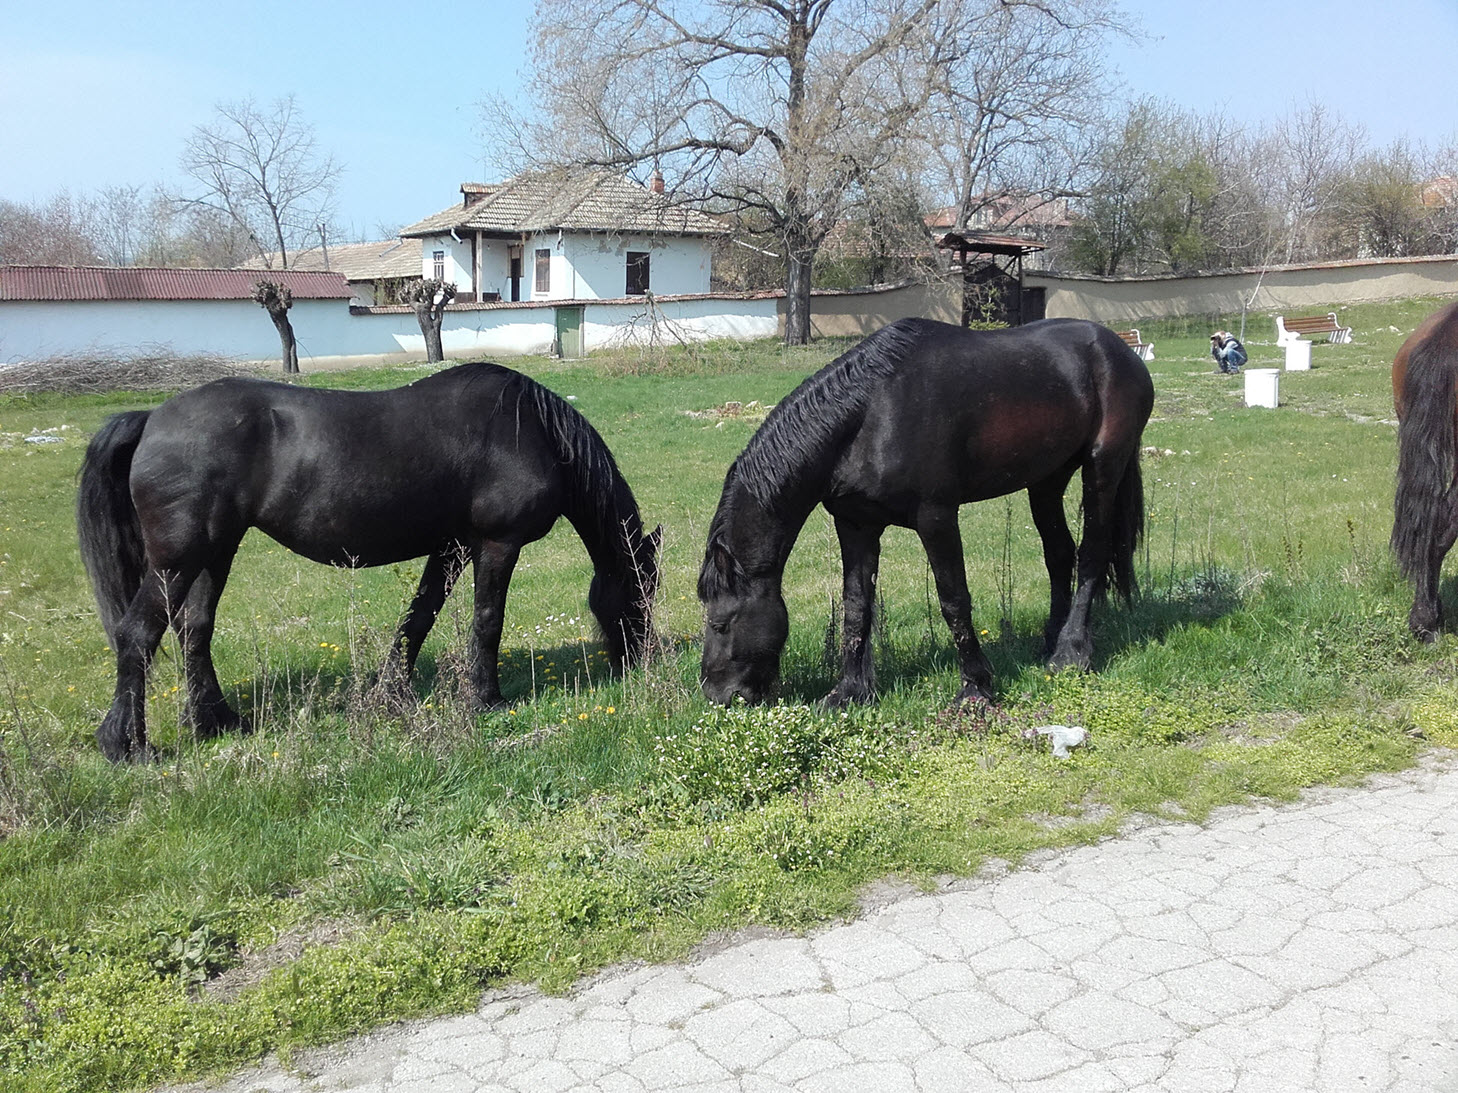 Escaped horses in Resen village, Bulgaria